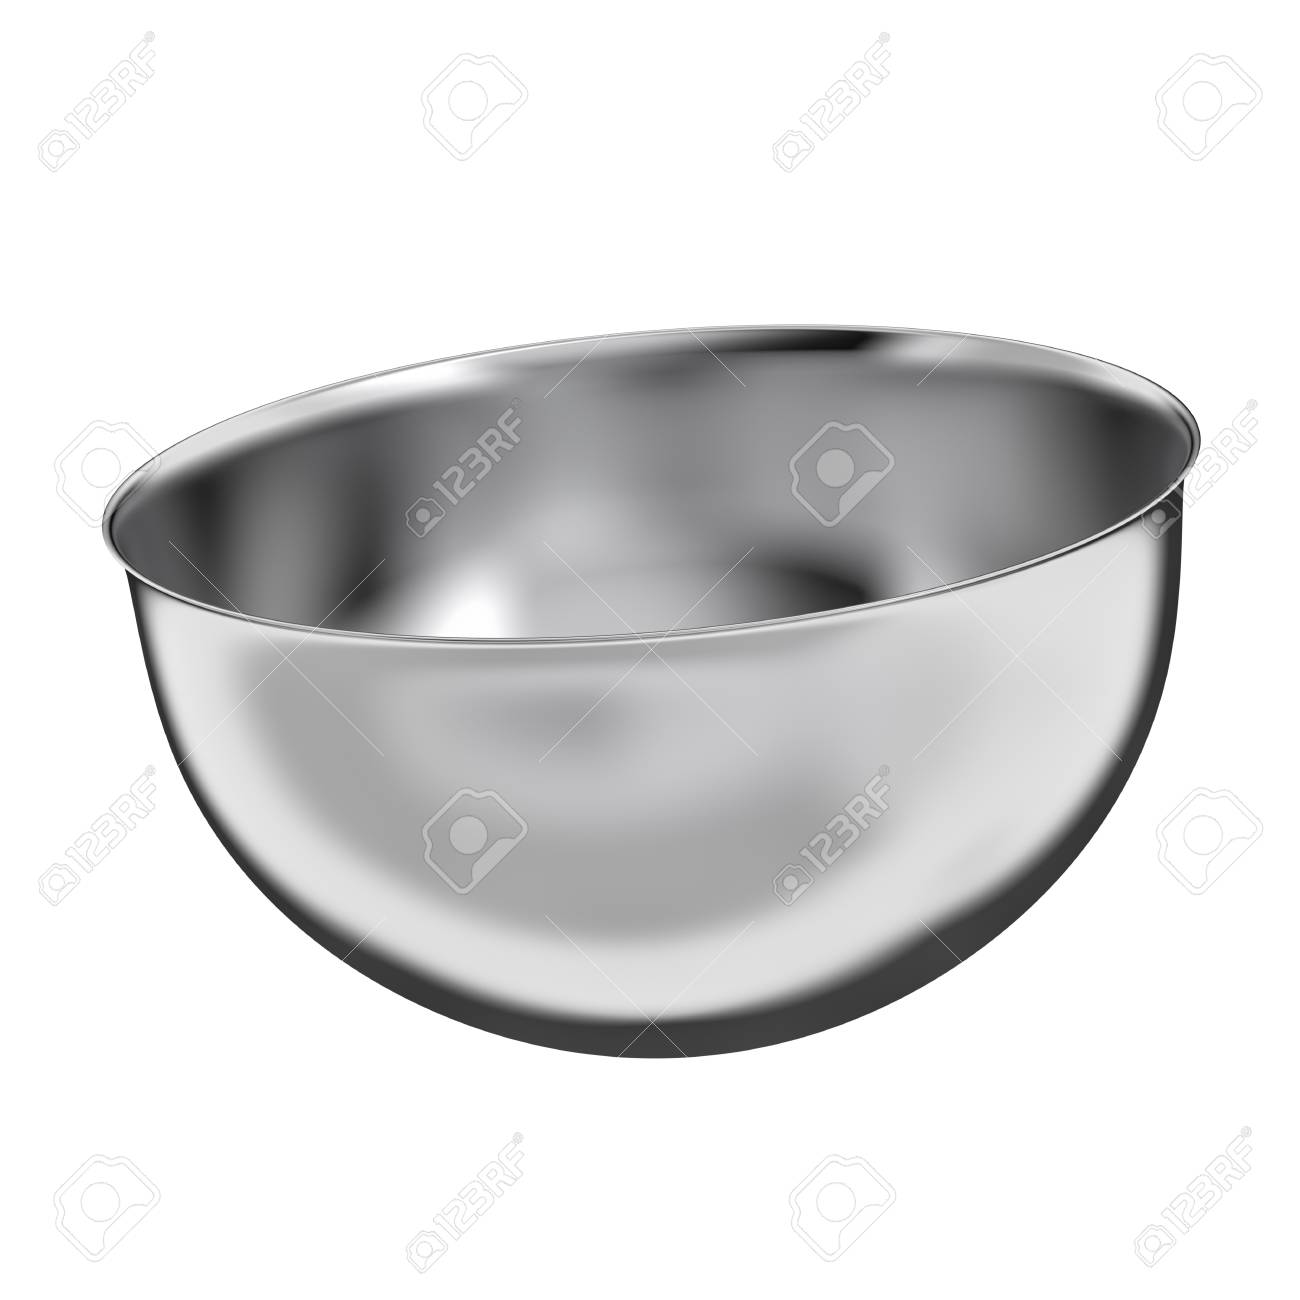 Stainless steel bowl - isolated on white background - 28414865